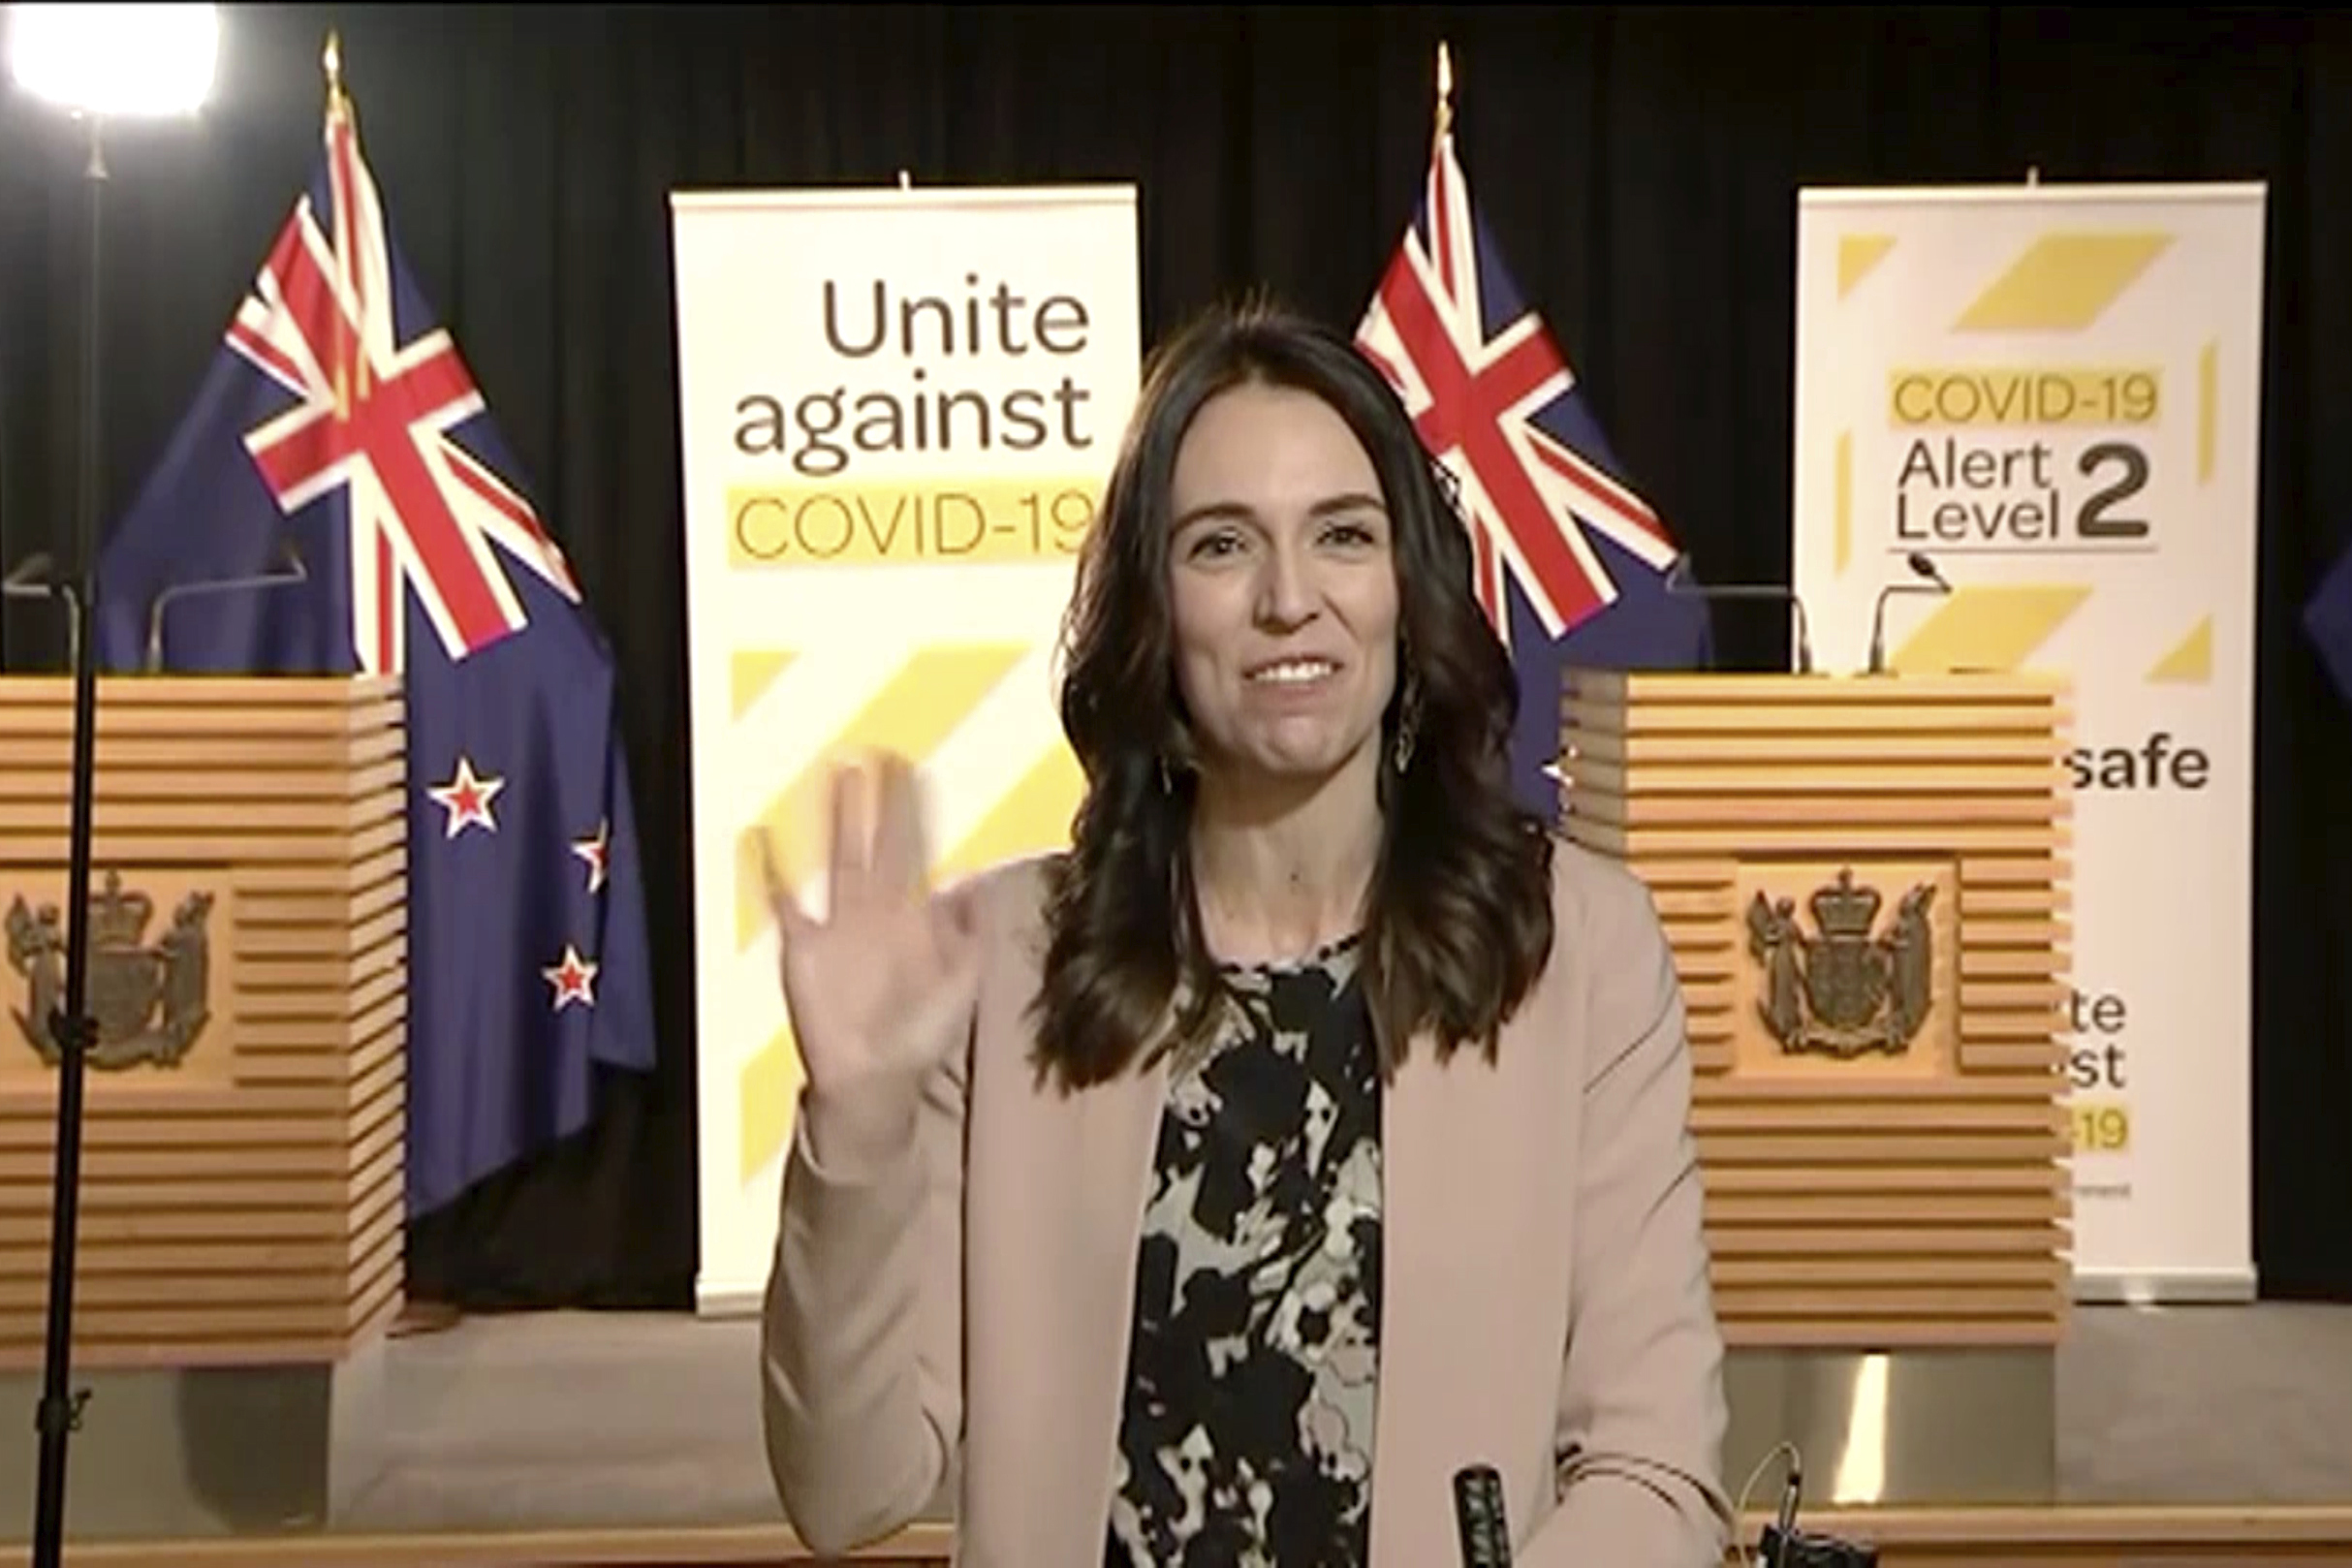 In this image made from video, New Zealand Prime Minister Jacinda Ardern waves to continue to speak when shaking stopped after an earthquake during a live television interview in Wellington, New Zealand, Monday morning, May 25, 2020. The quake struck in the ocean about 100 kilometers (62 miles) northeast of Wellington, according to the U.S. Geological Survey. New Zealand sits on the Pacific Ring of Fire and is sometimes called the Shaky Isles for its frequent quakes.